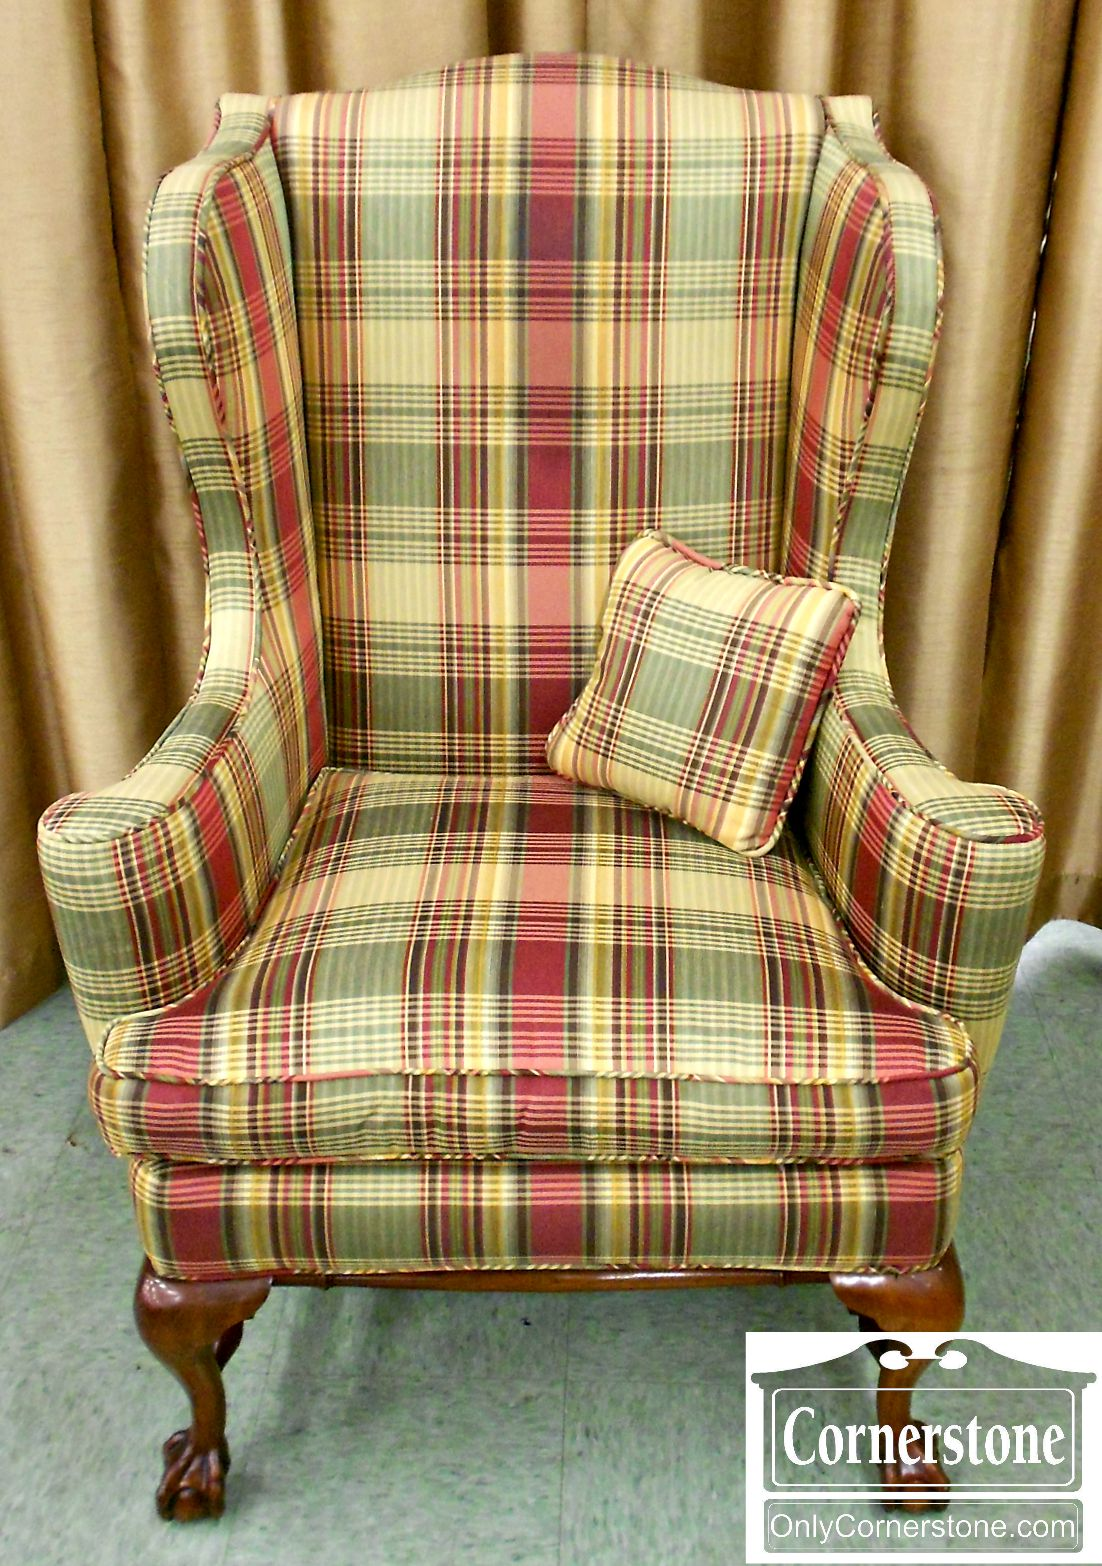 5208-830 Chippendale Ball and Claw Foot Upholstered Wing Chair